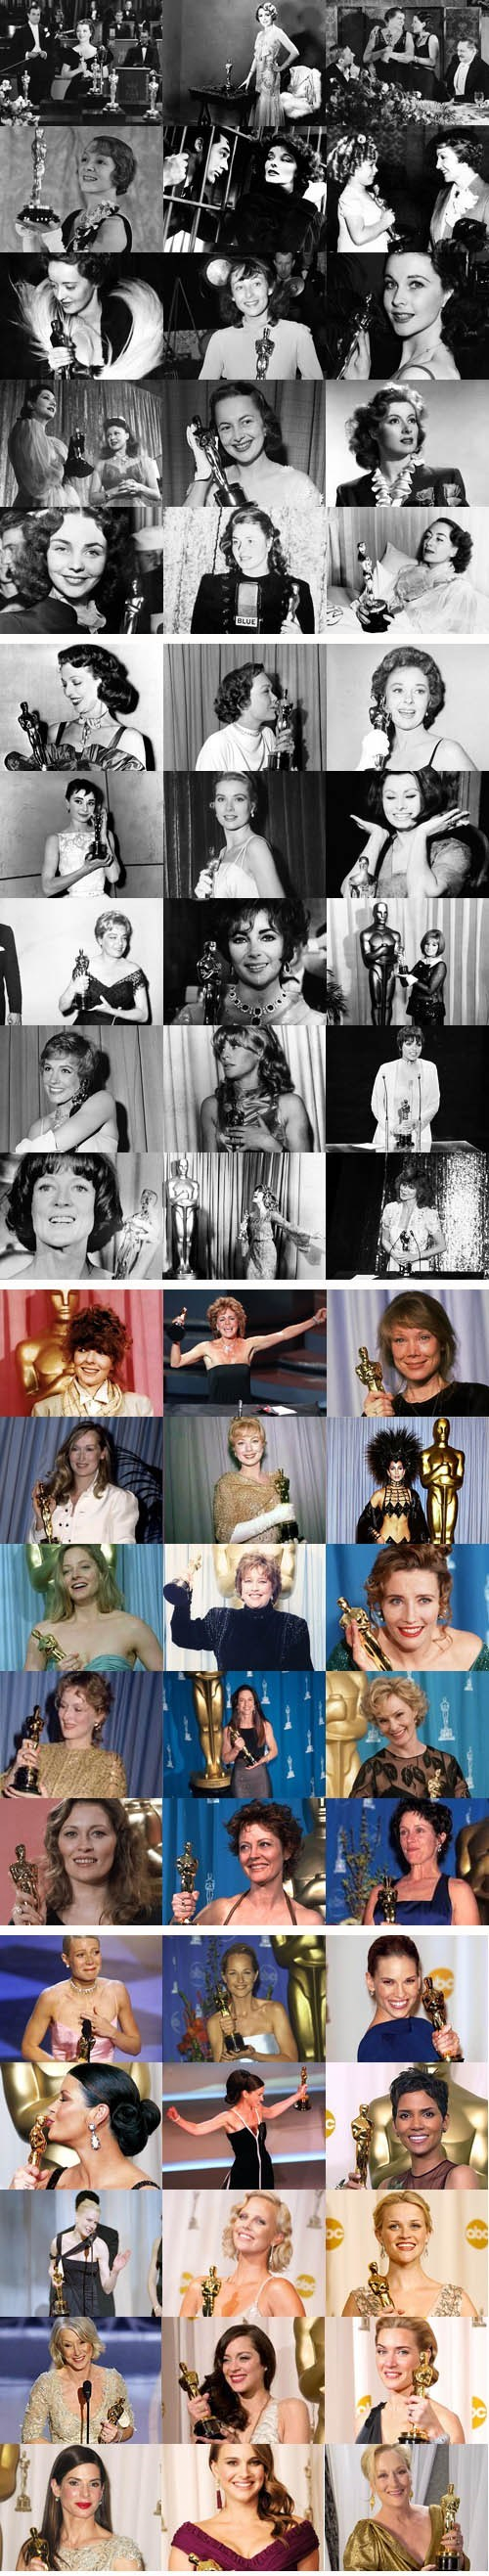 best actress academy awards oscars - 7082545152